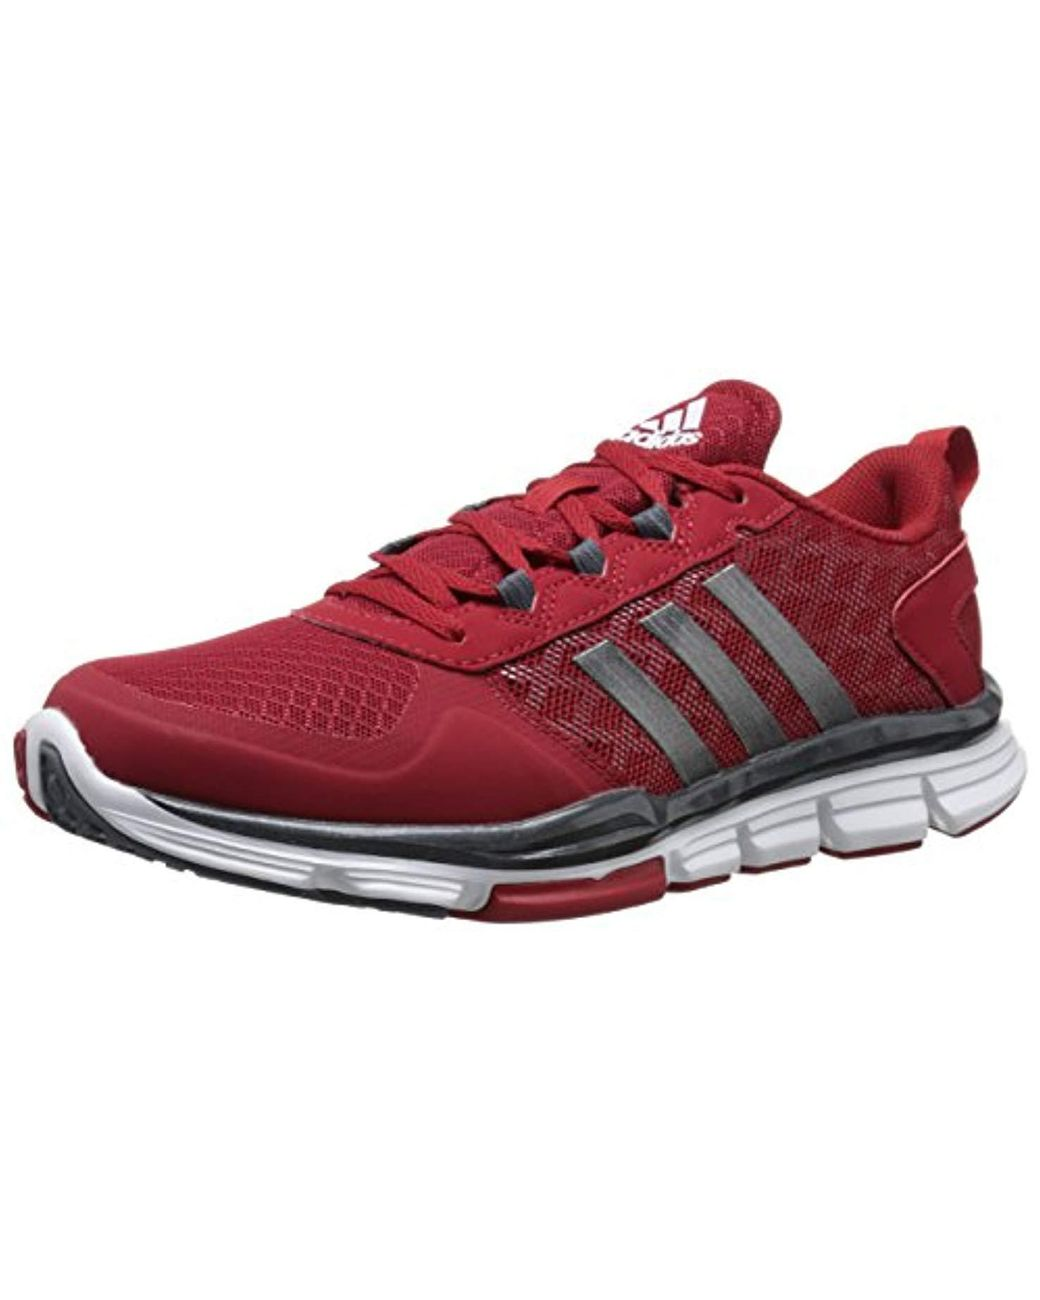 Adidas Red Freak X Carbon Mid Cross Trainer for Men Lyst